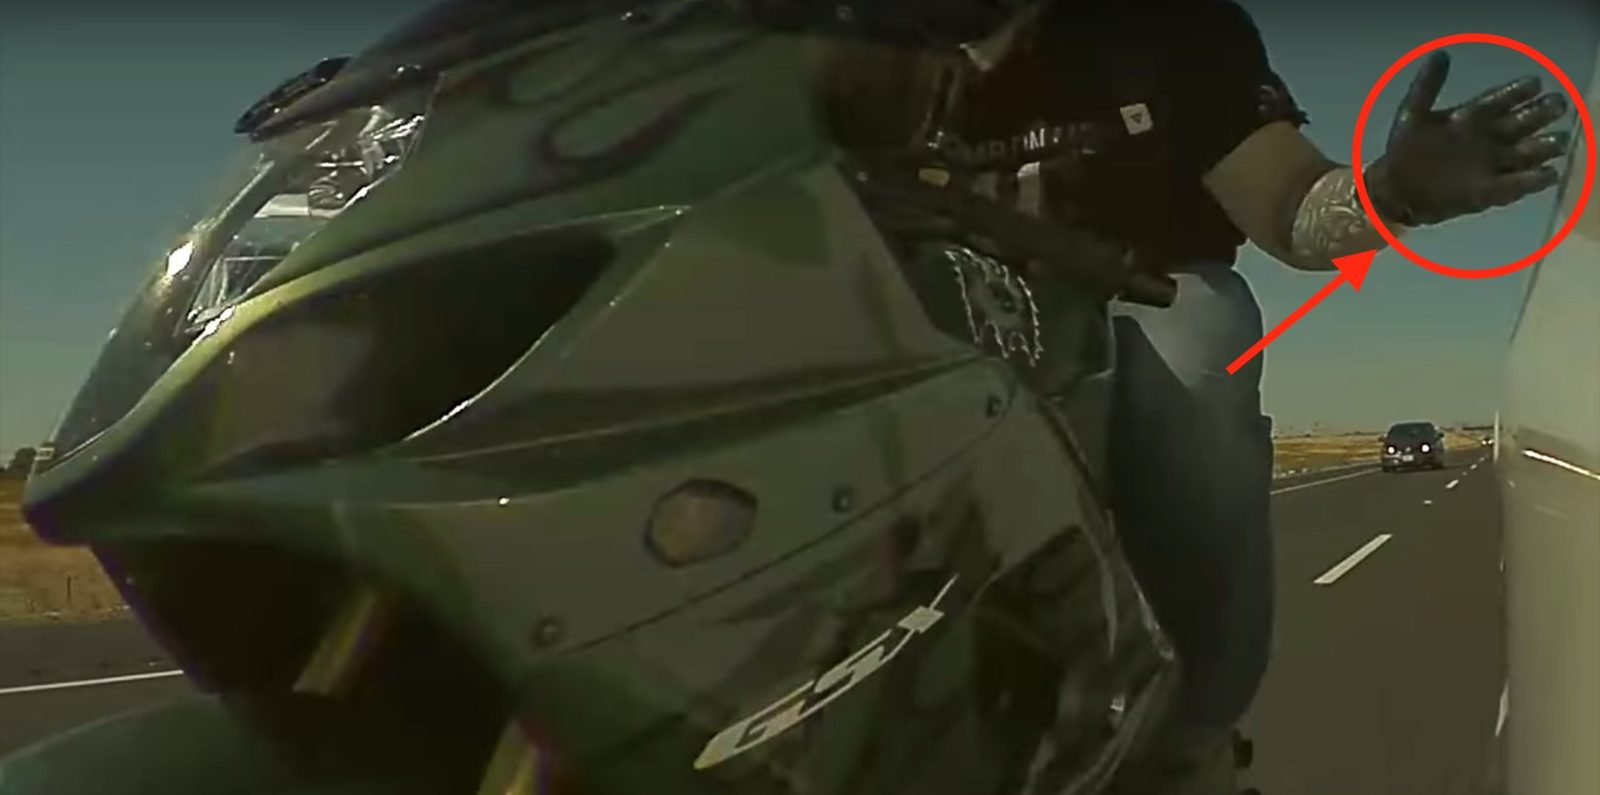 Tesla dashcam captures motorcyclist intentionally snapping off mirror, police find him